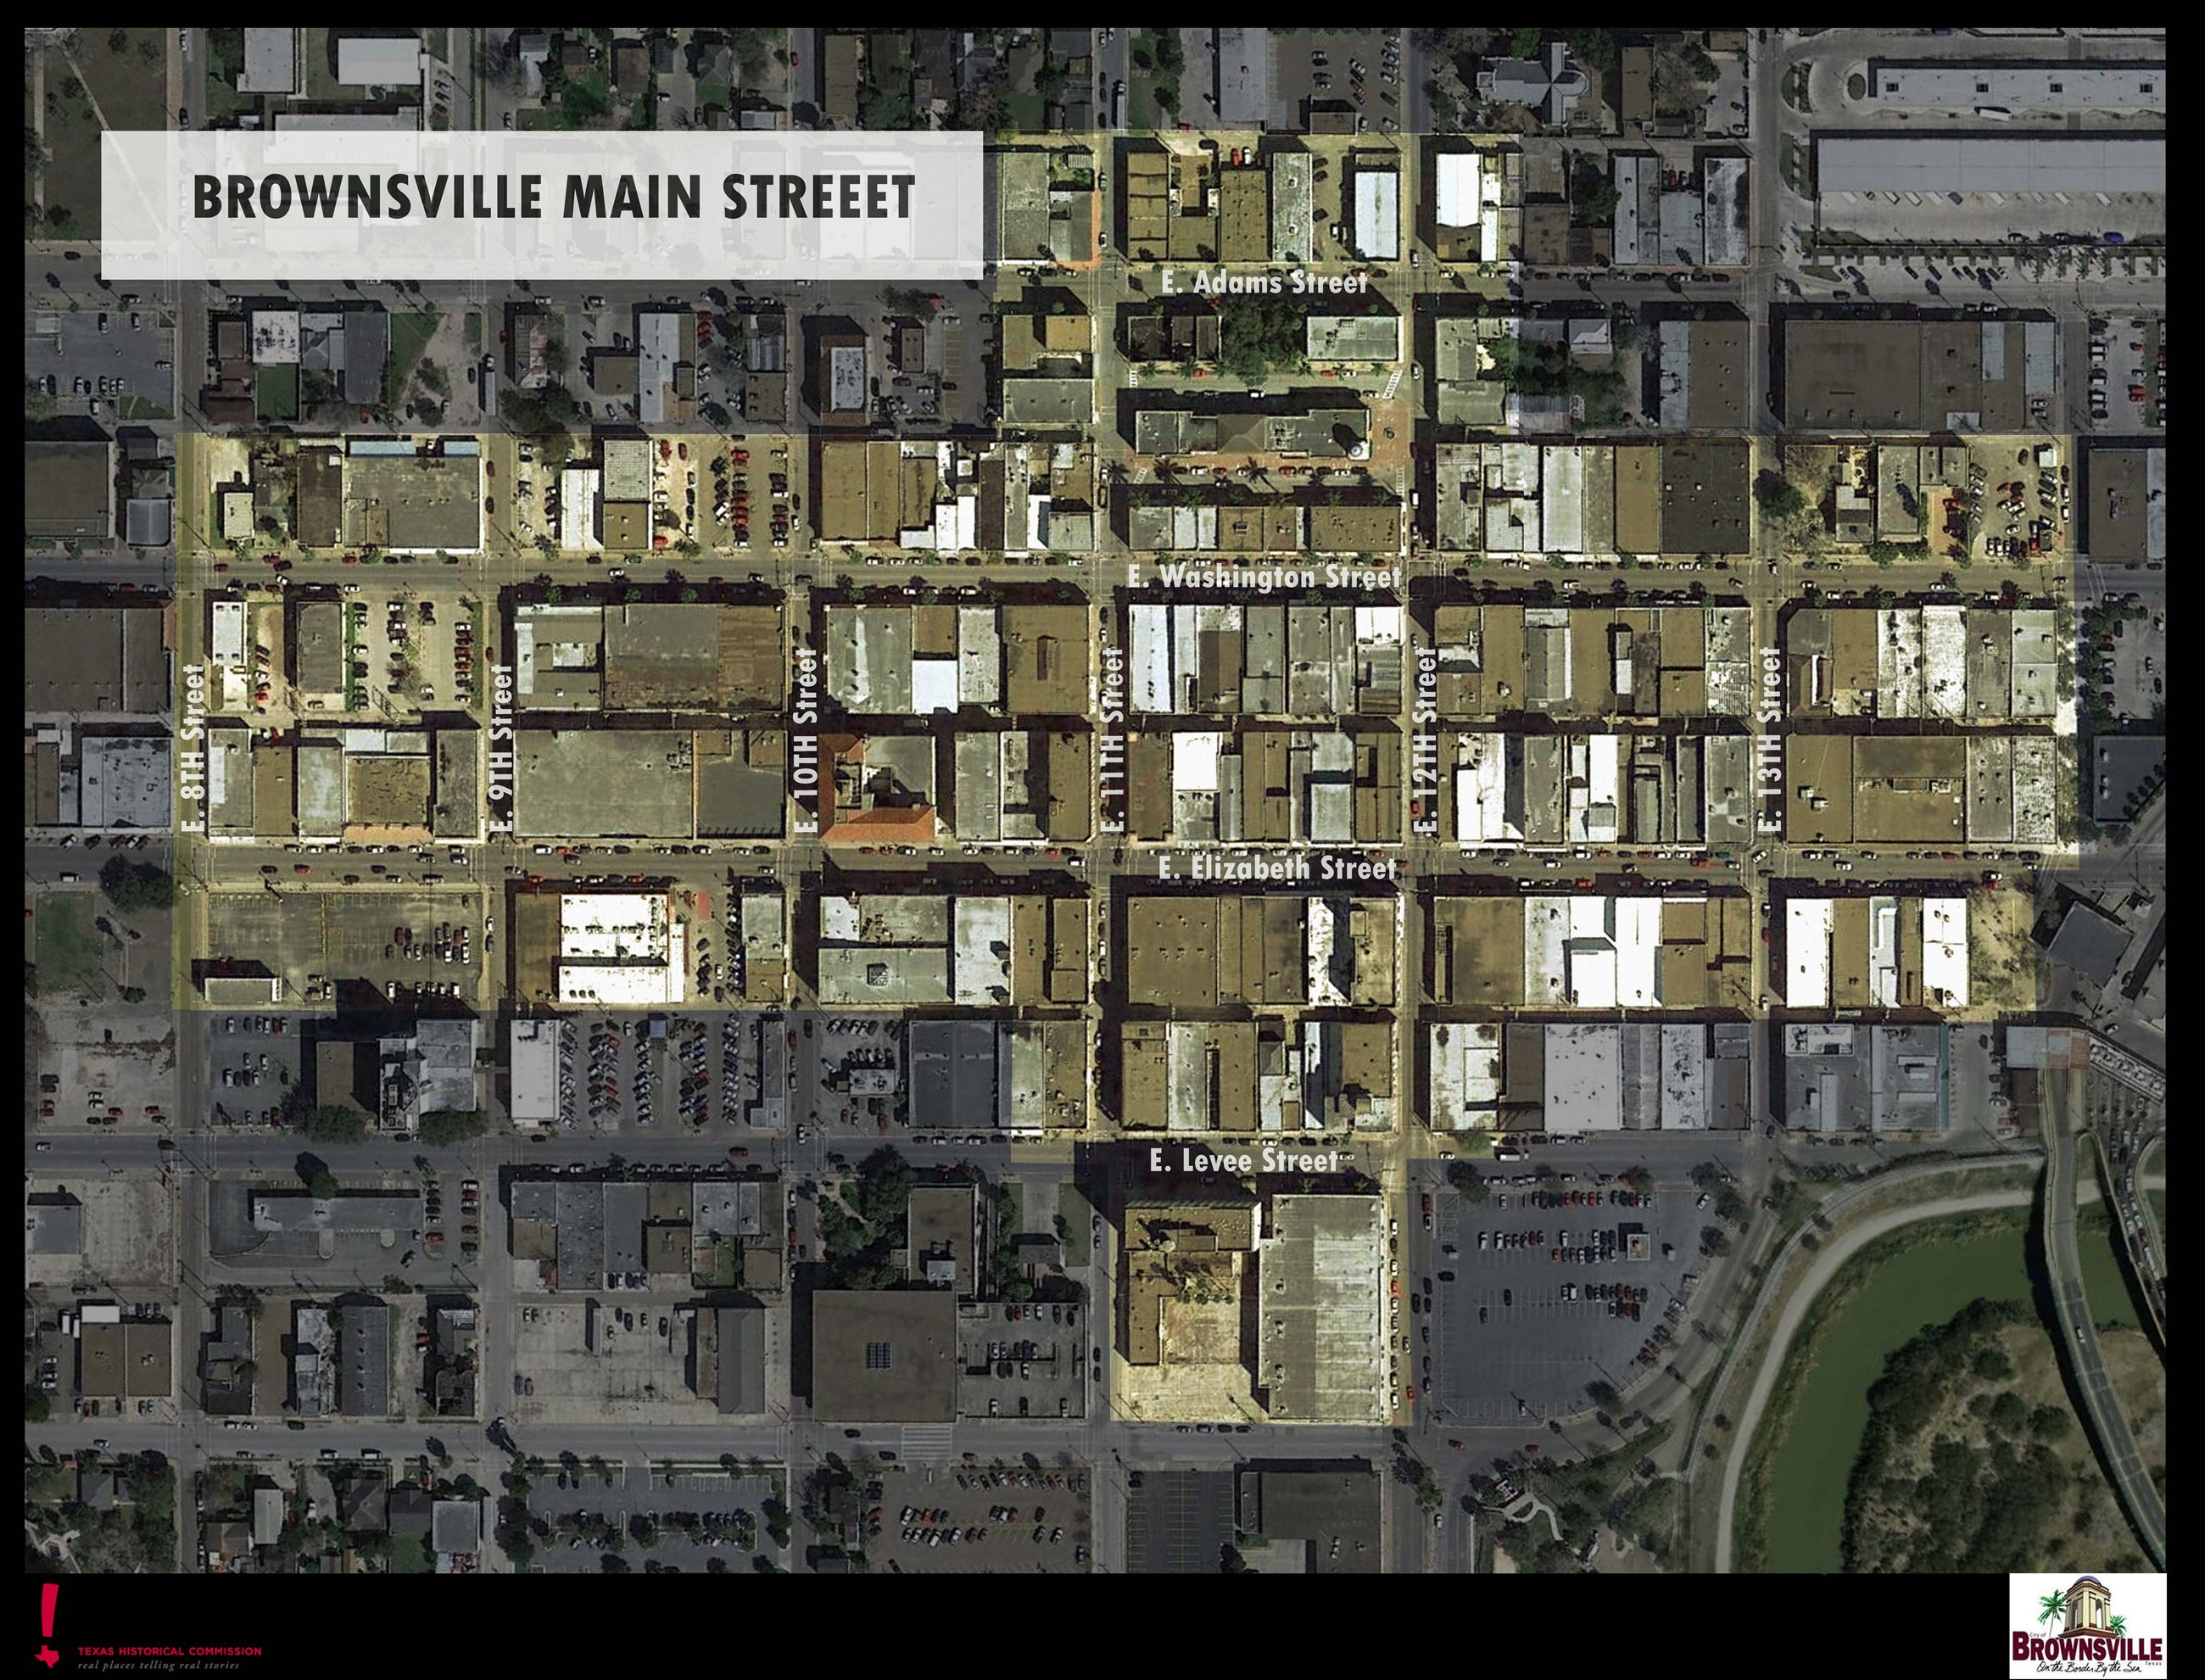 A map of main street